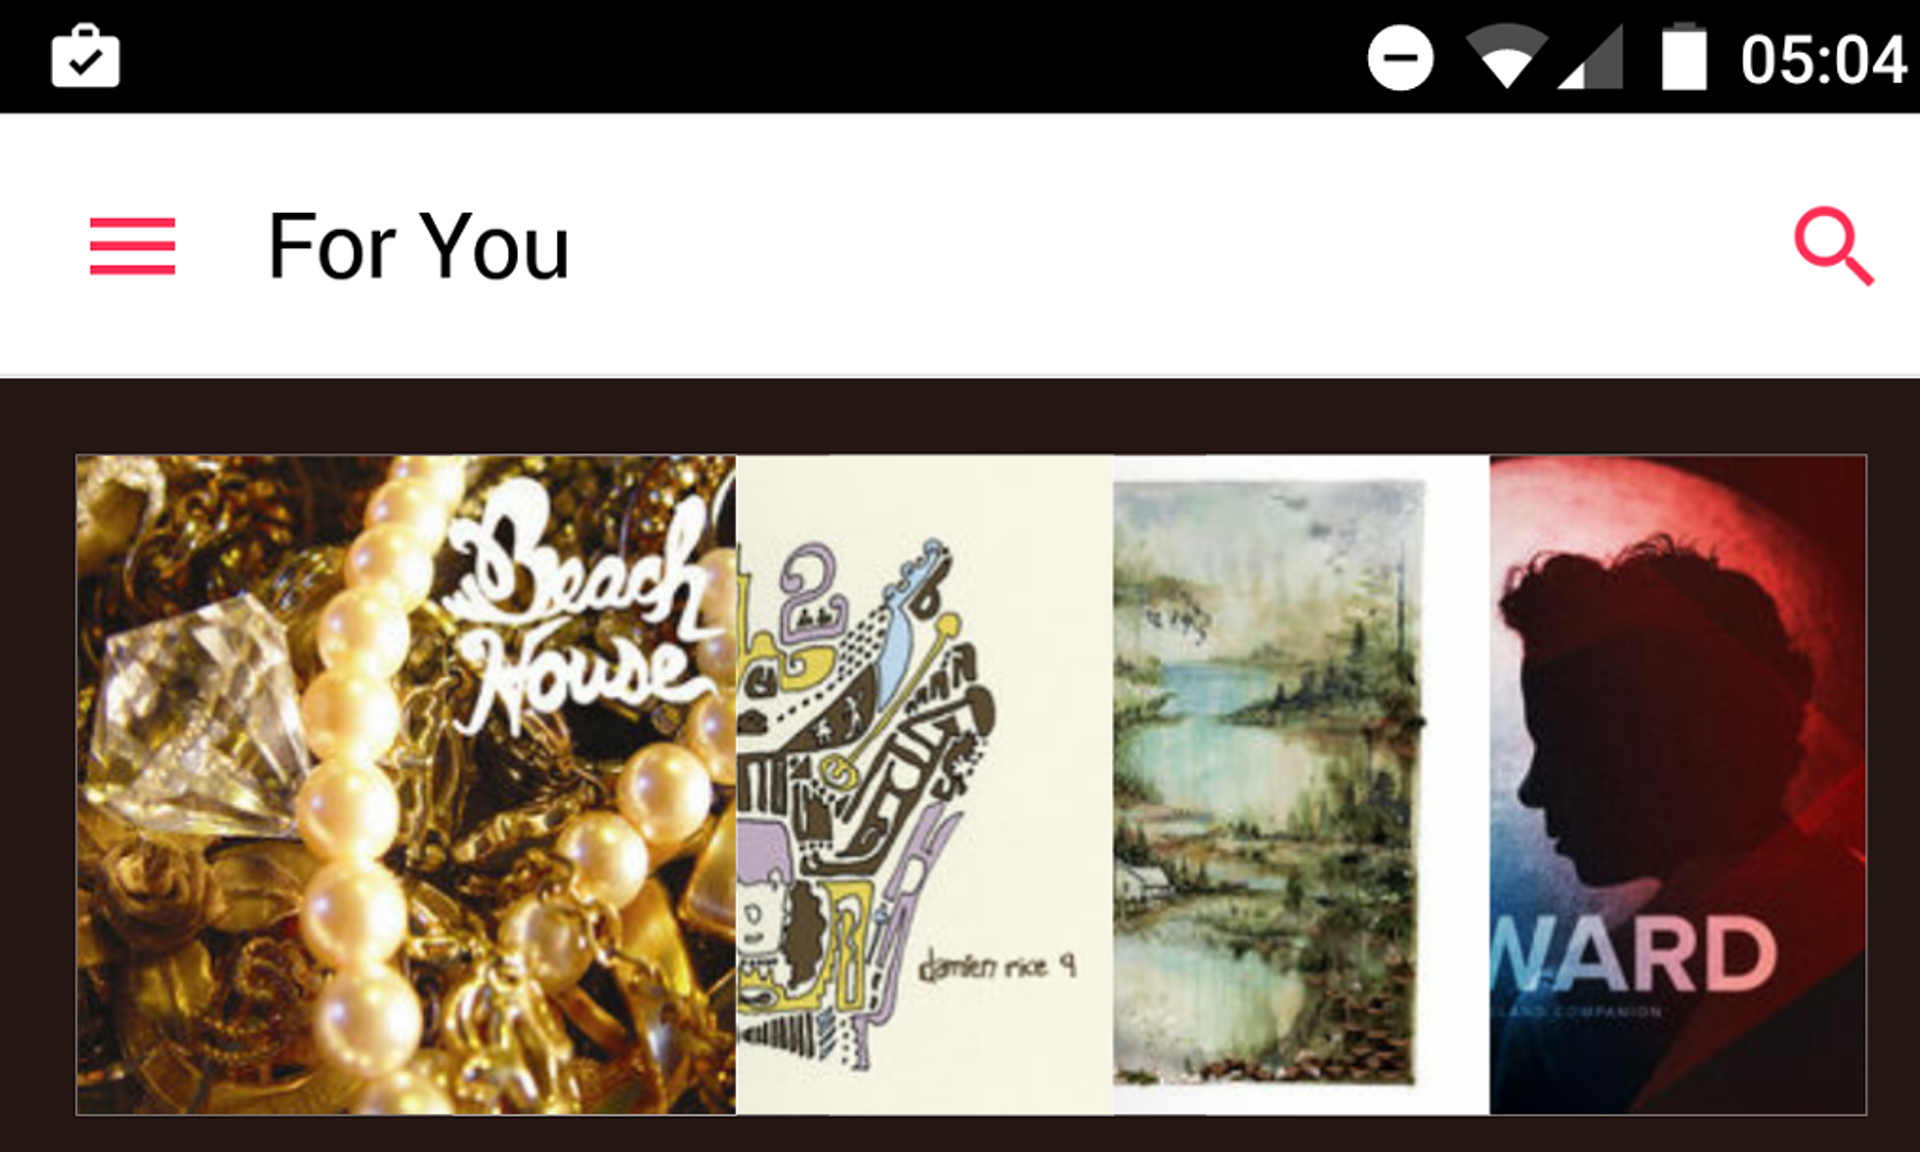 Apple Launches Its First Android App, Apple Music